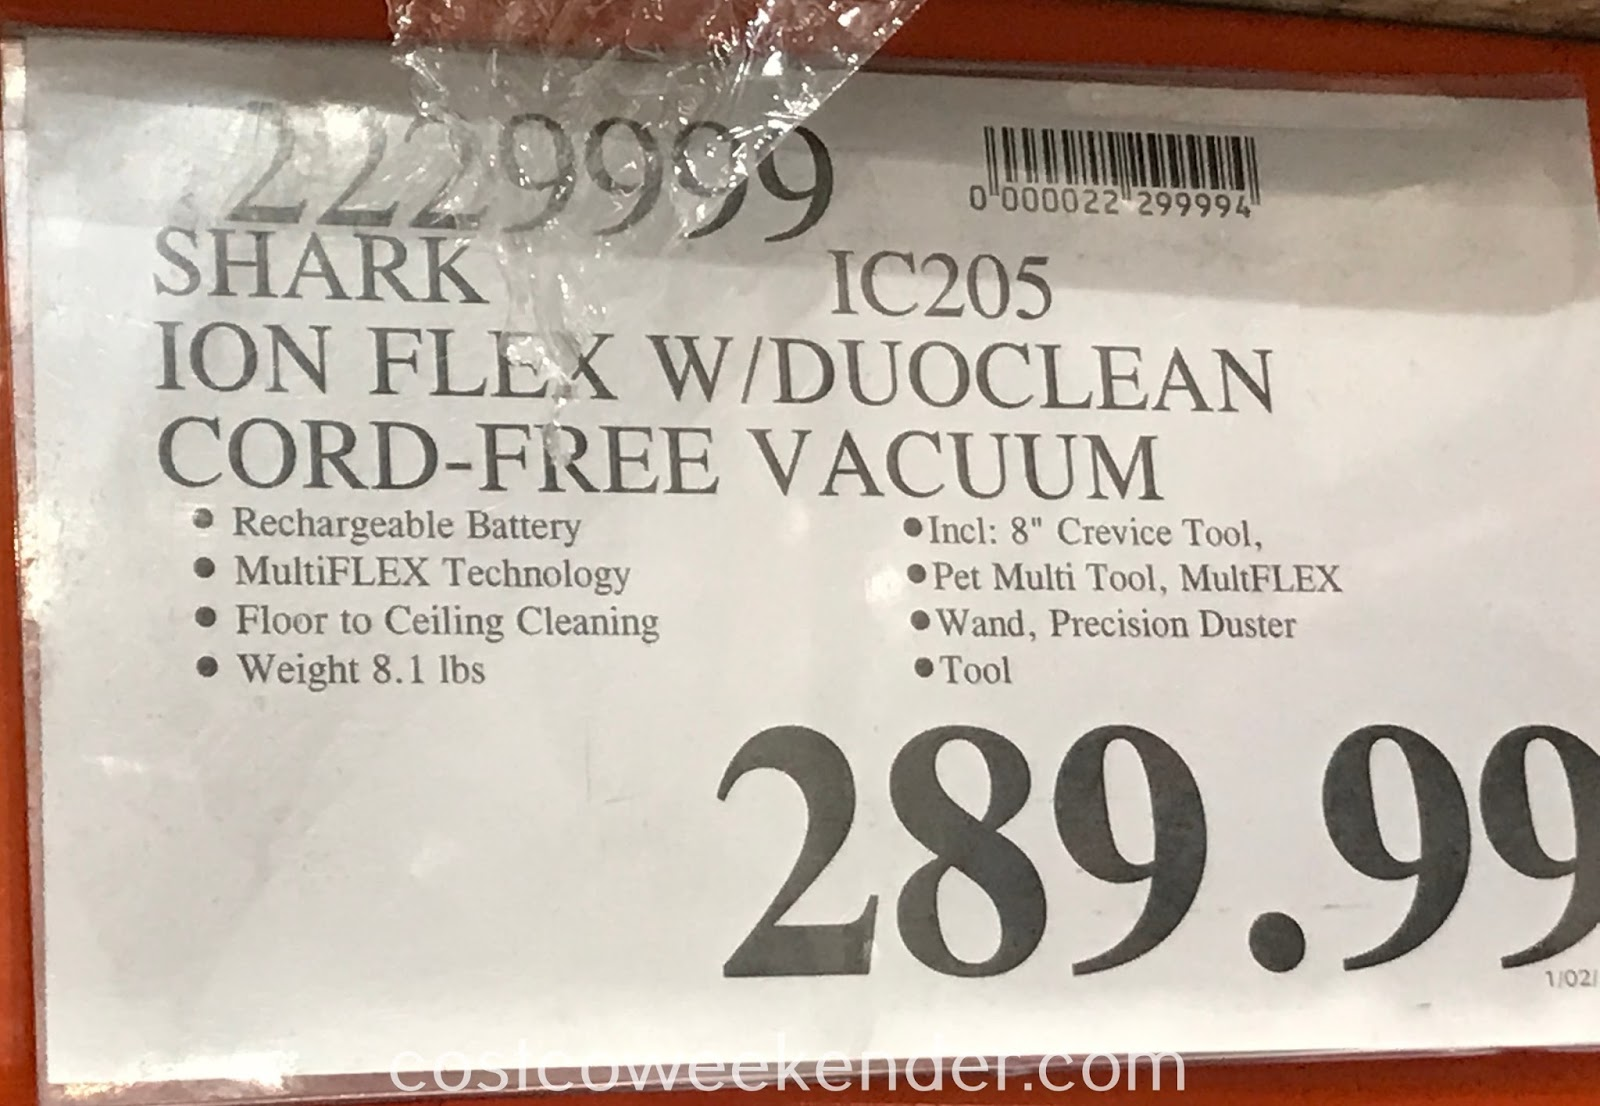 Deal for the Shark Ion Flex Cord-free Vacuum at Costco